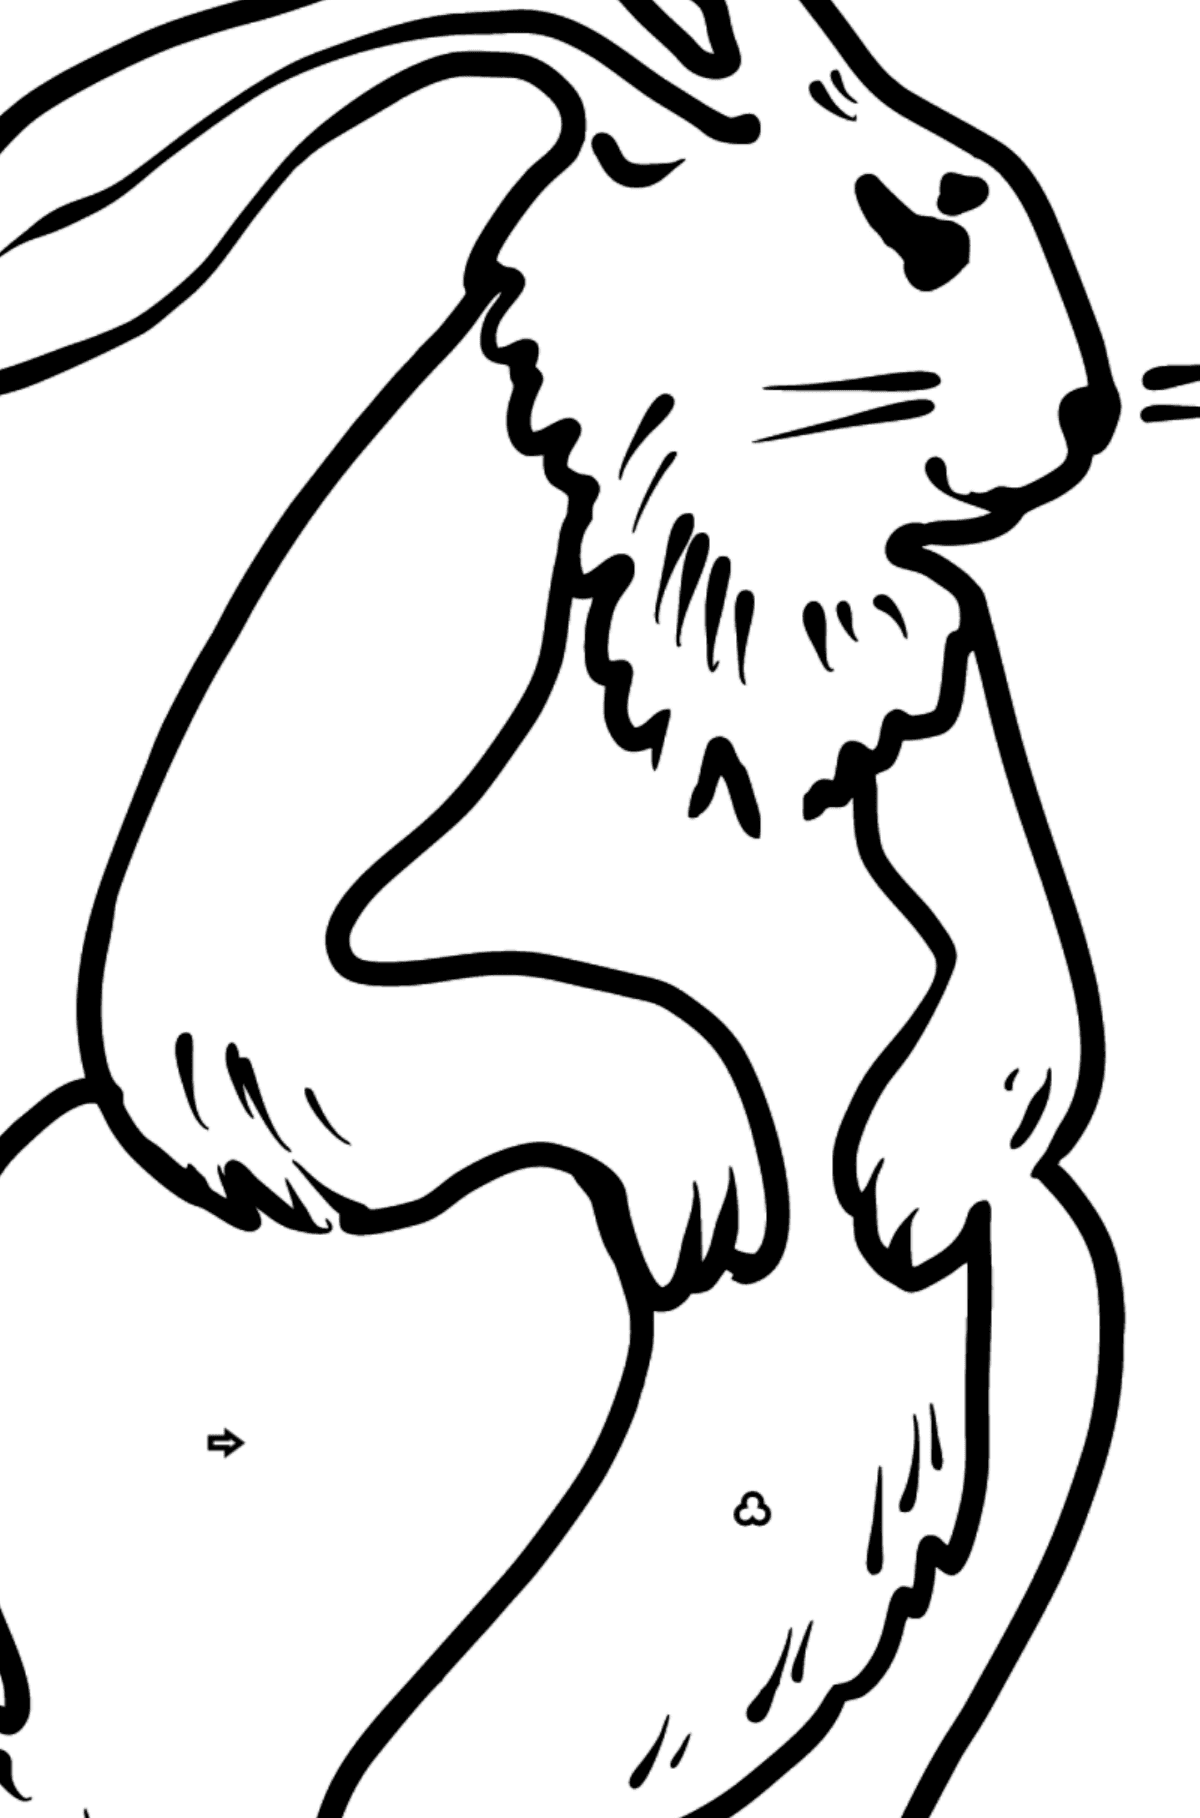 Rabbit coloring page - Coloring by Geometric Shapes for Kids